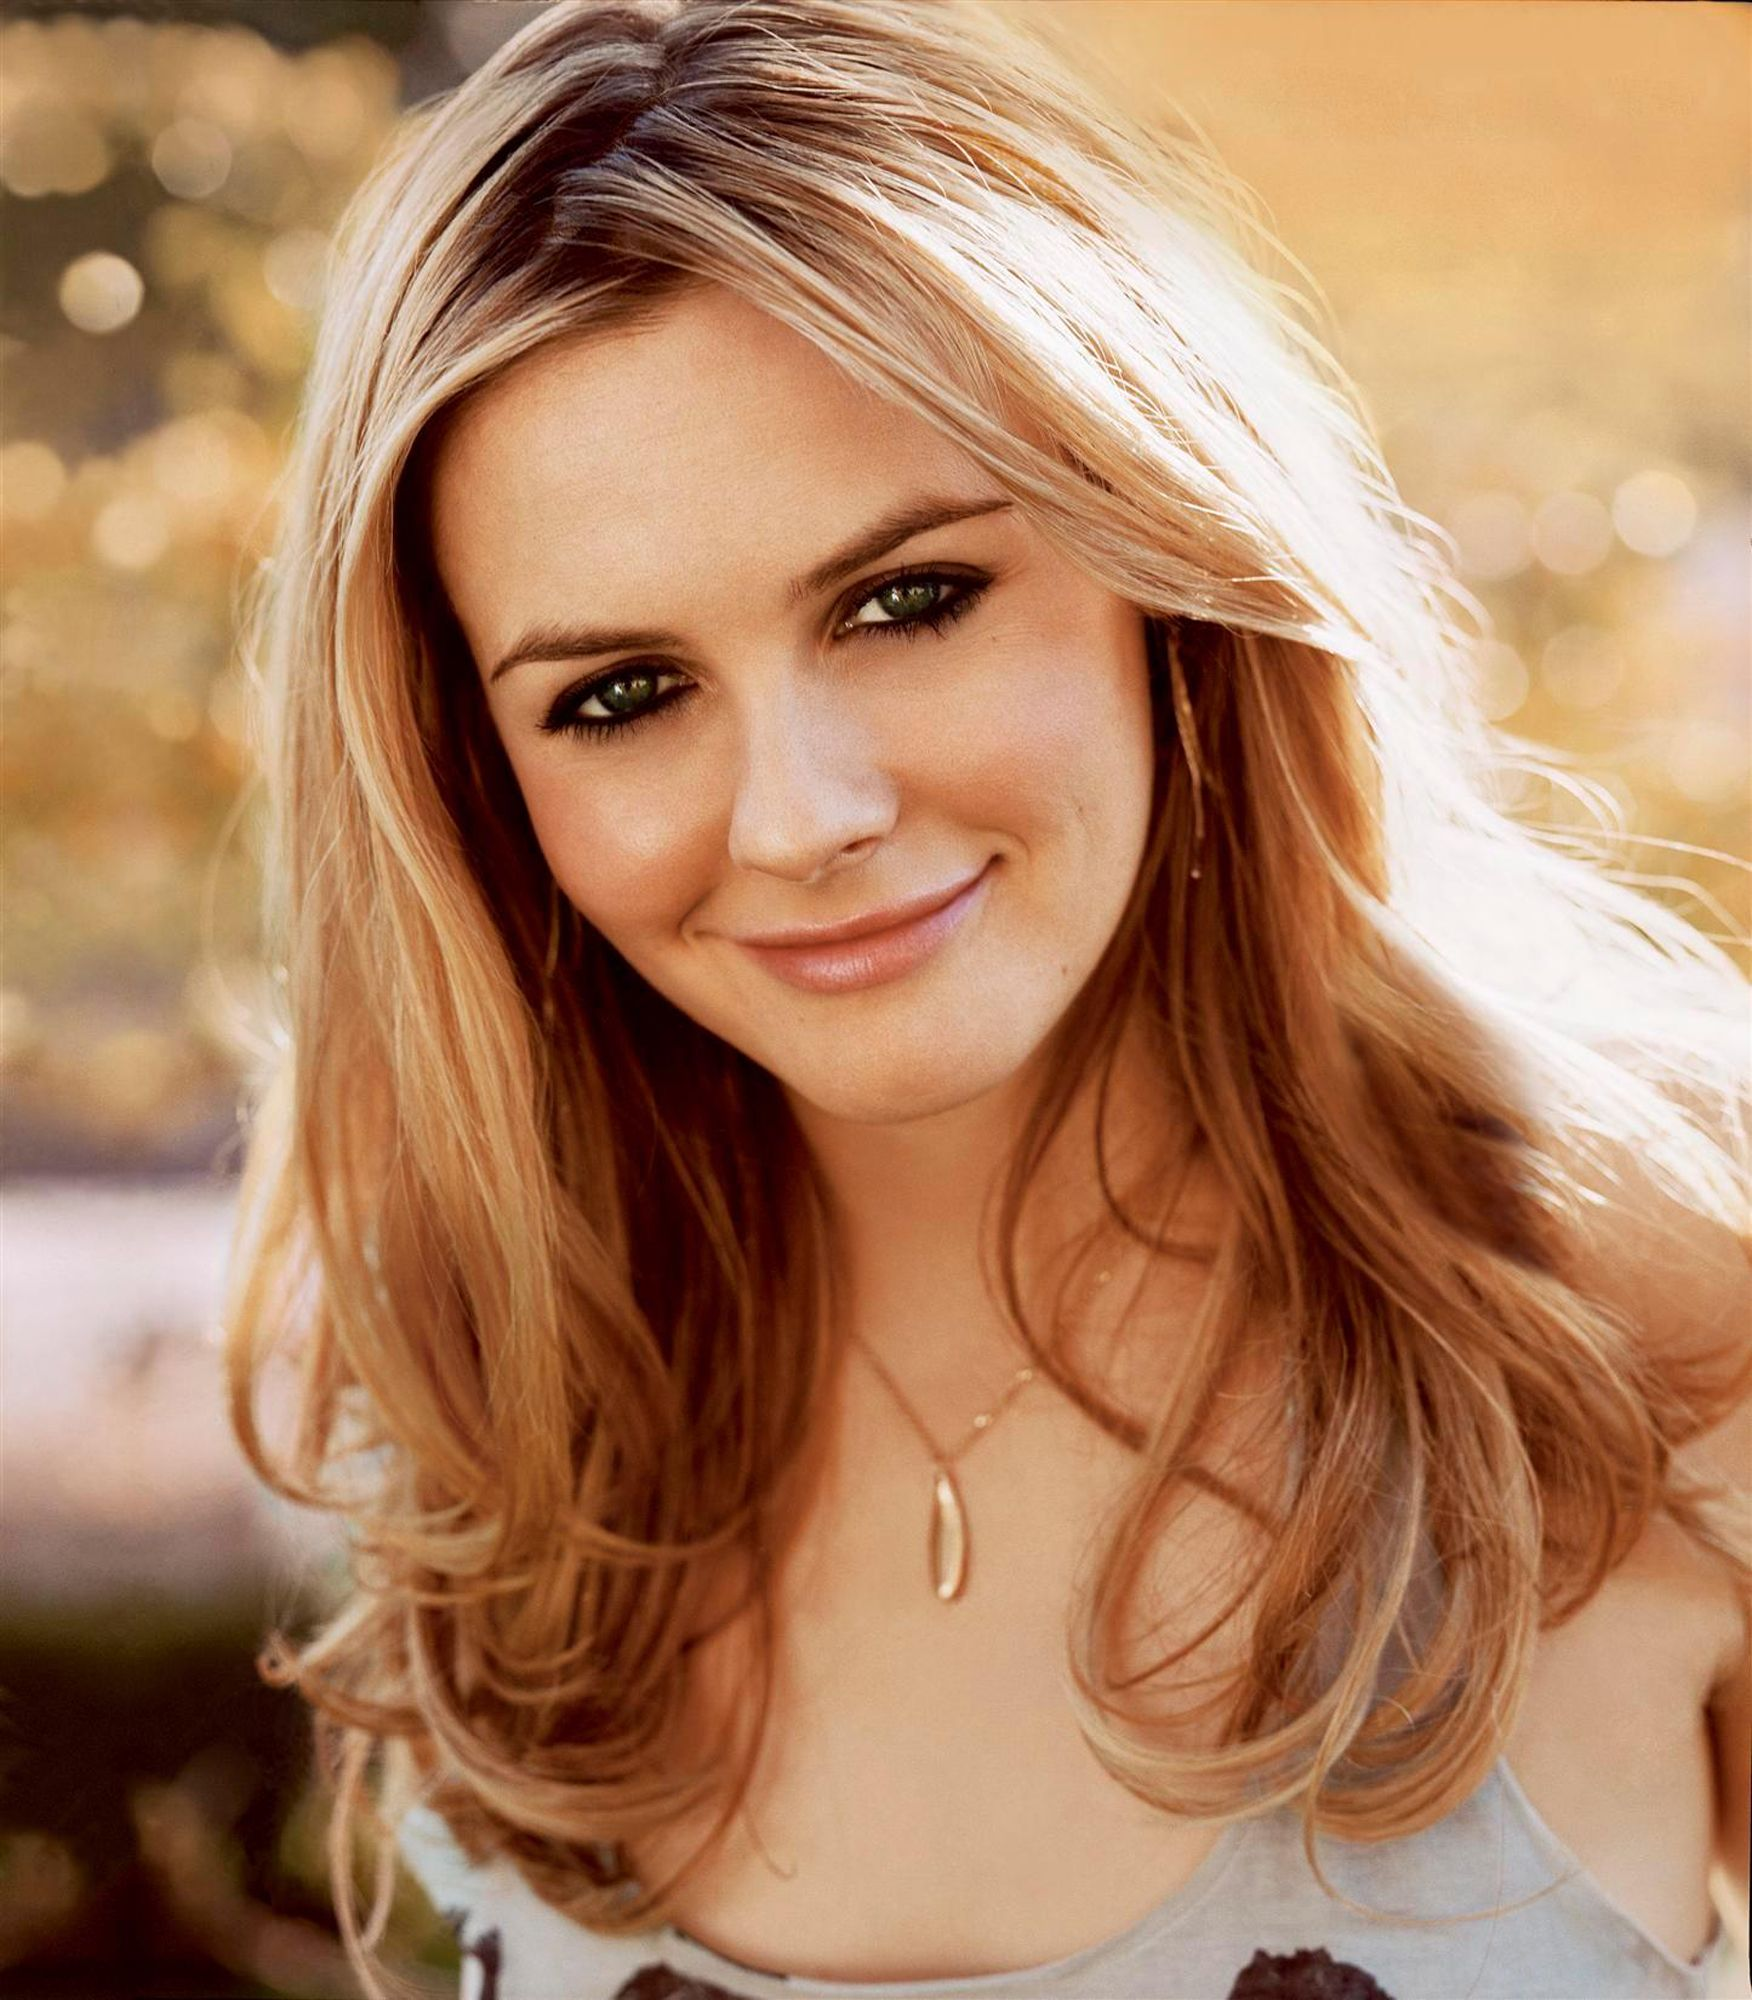 Alicia Silverstone Hd Wallpapers For Desktop Download